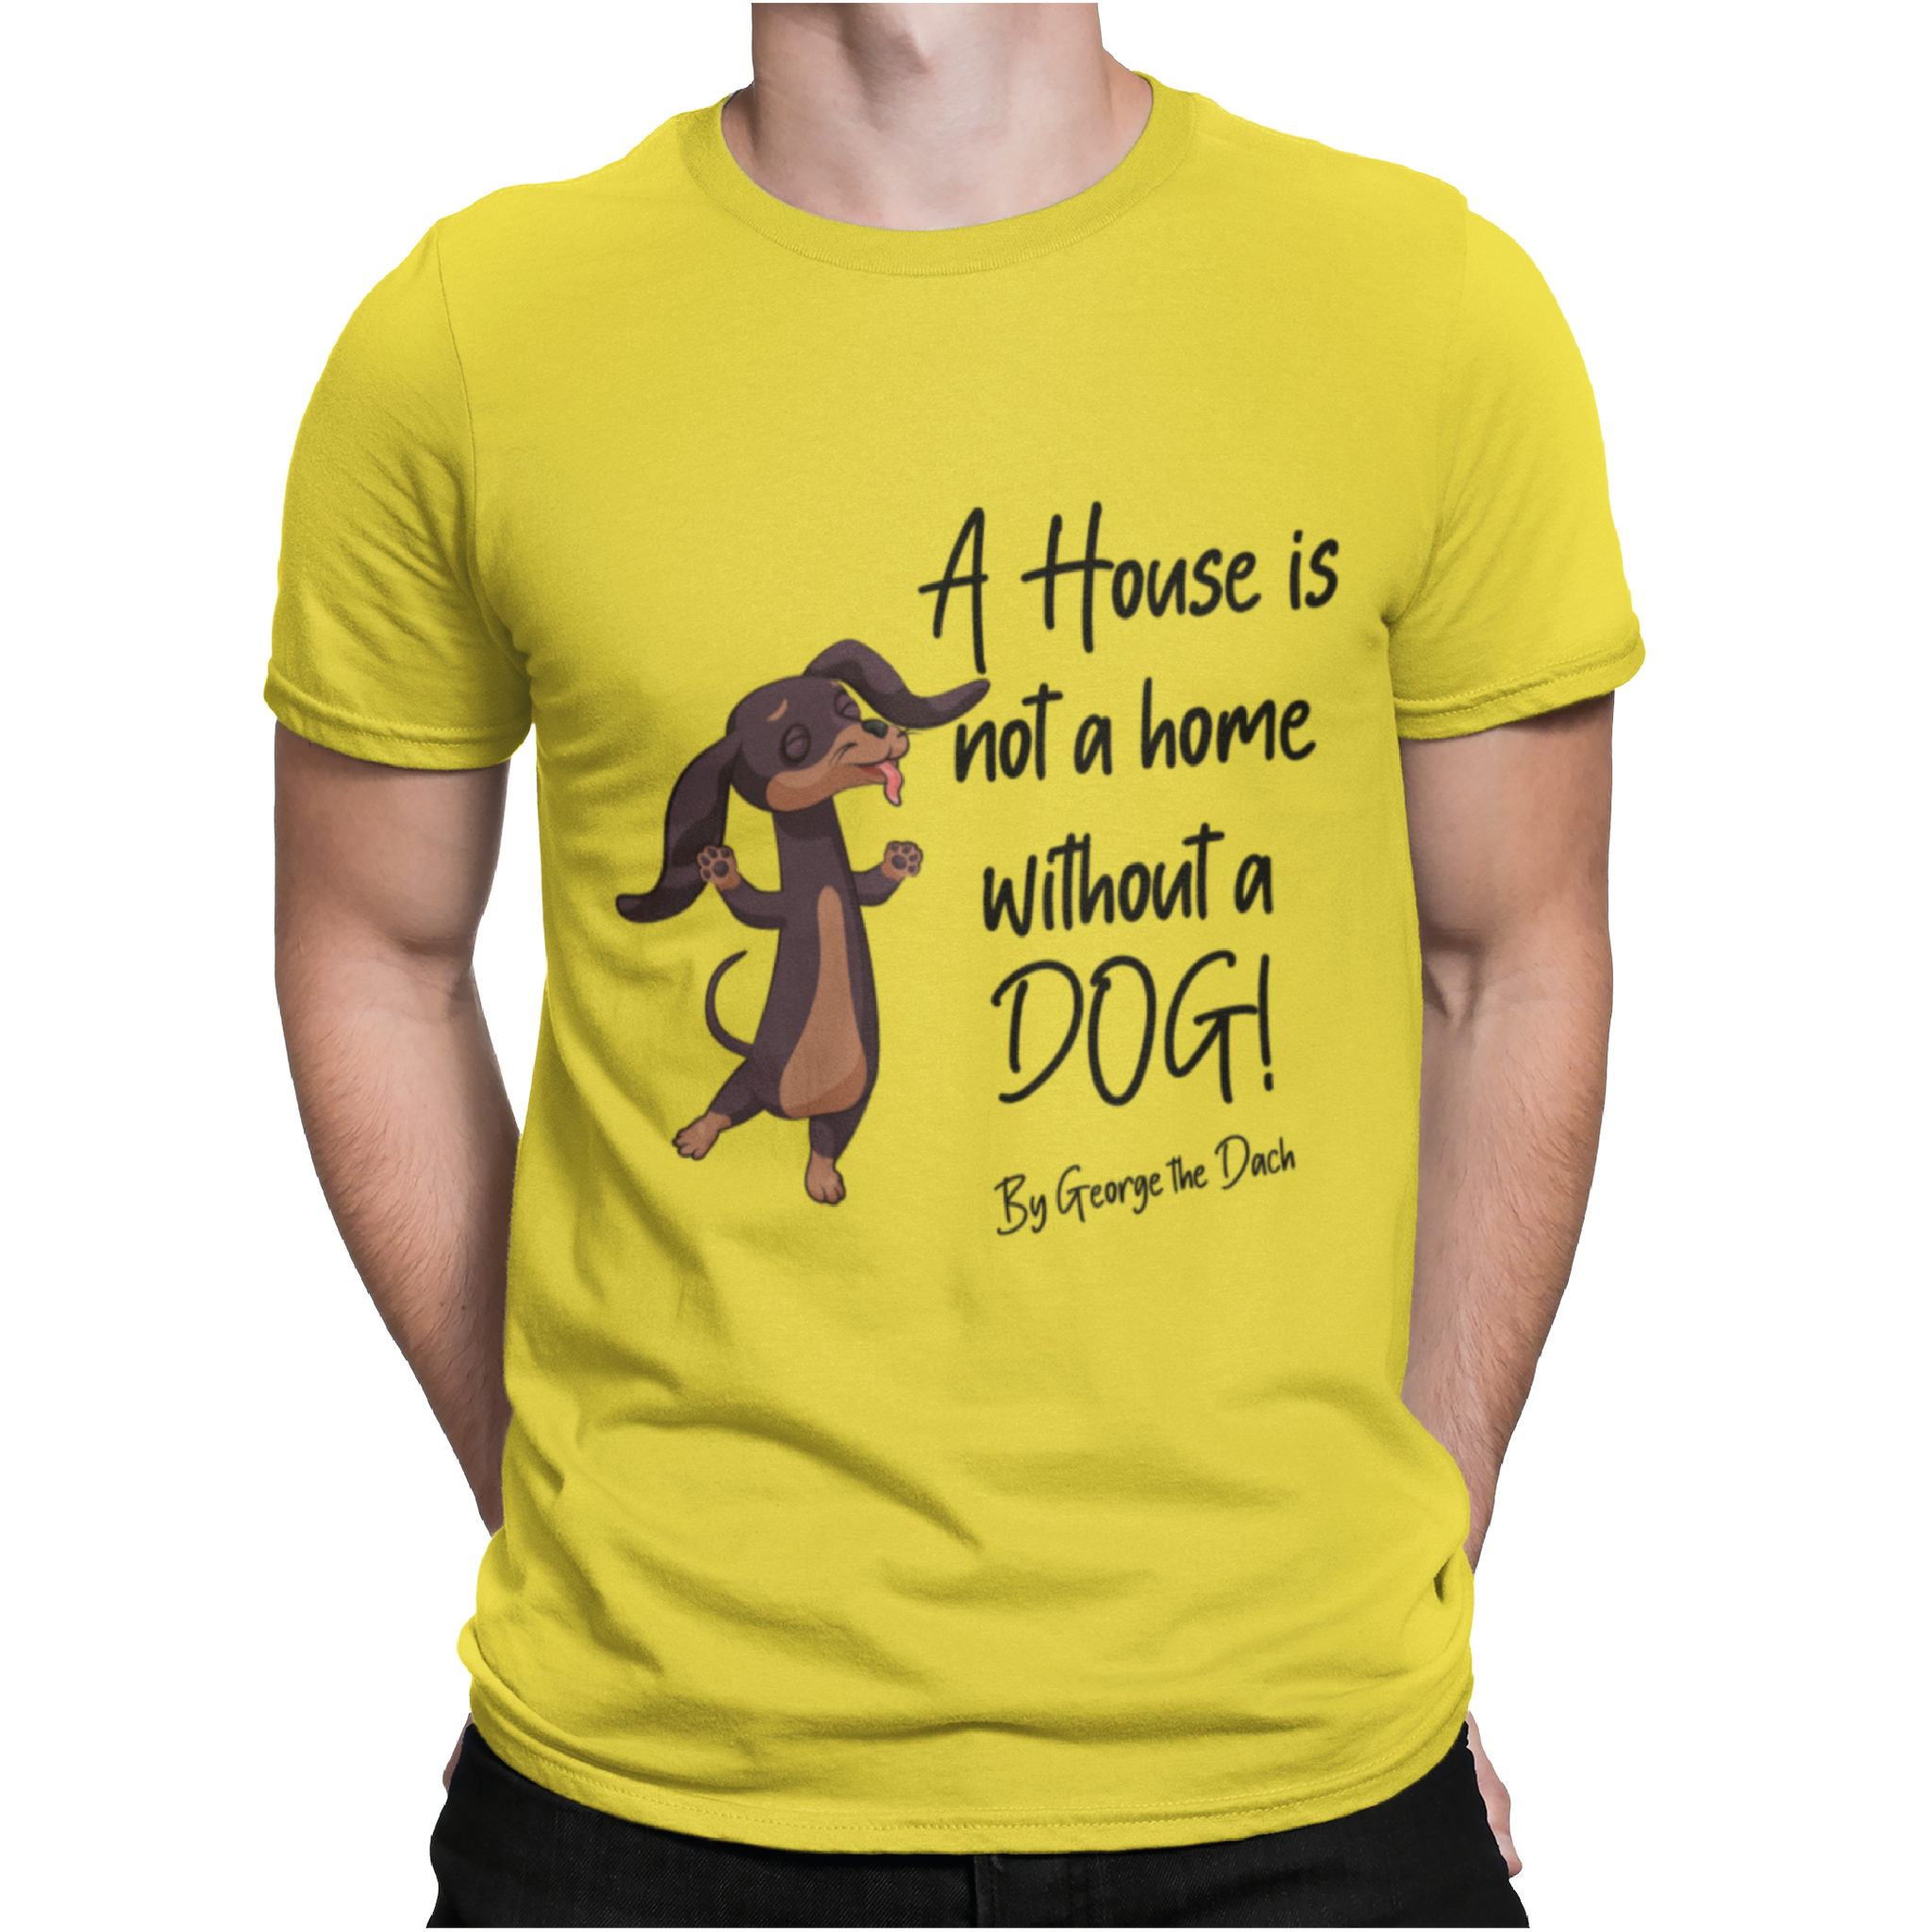 A House is not a home, without a Dog T-Shirt